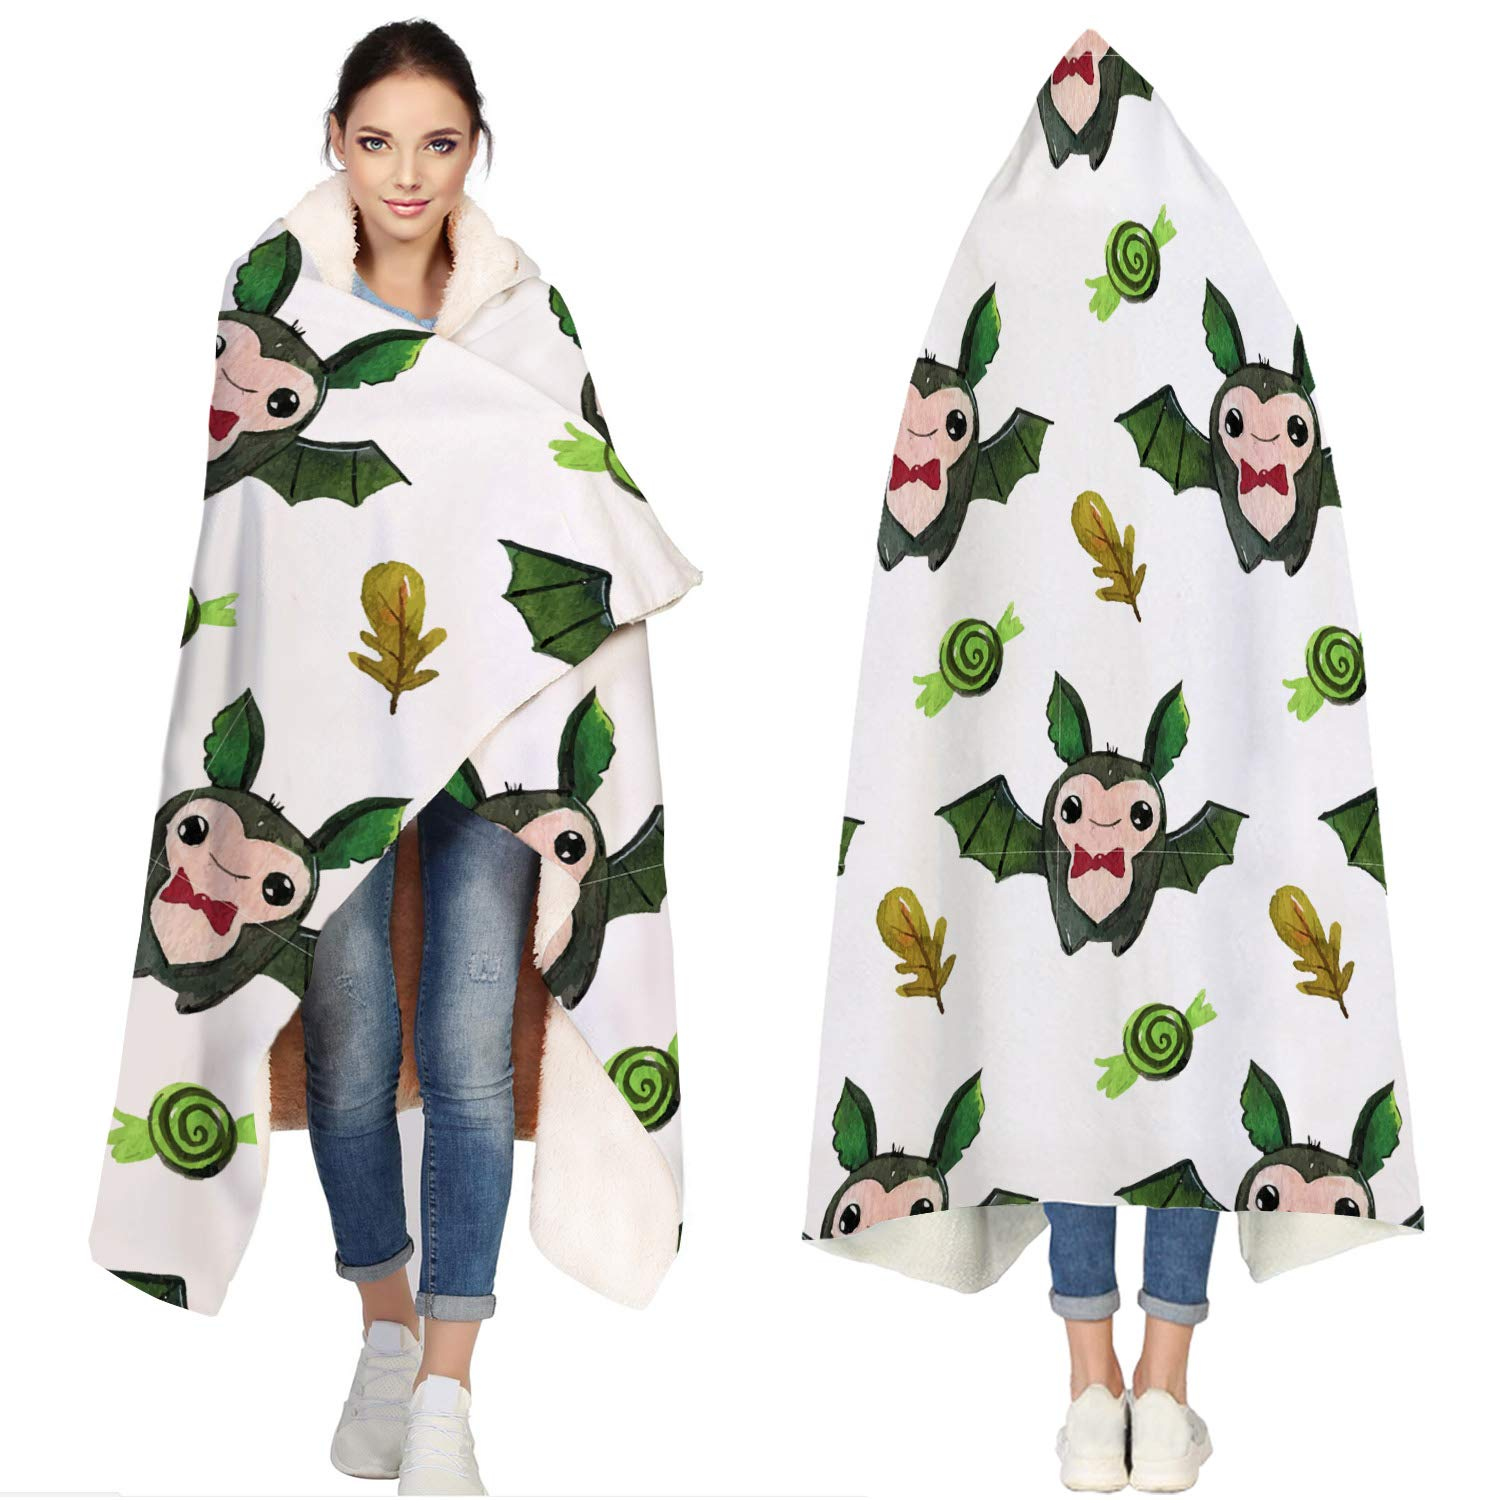 SUN-Shine Happy Halloween Sherpa Hooded Blanket, Wrap Soft Flannel Fleece Wearable Throw Hoodie Blankets for Kids Adults Girls Boys, Cartoon Paved Bats Leaves and Candy by SUN-Shine